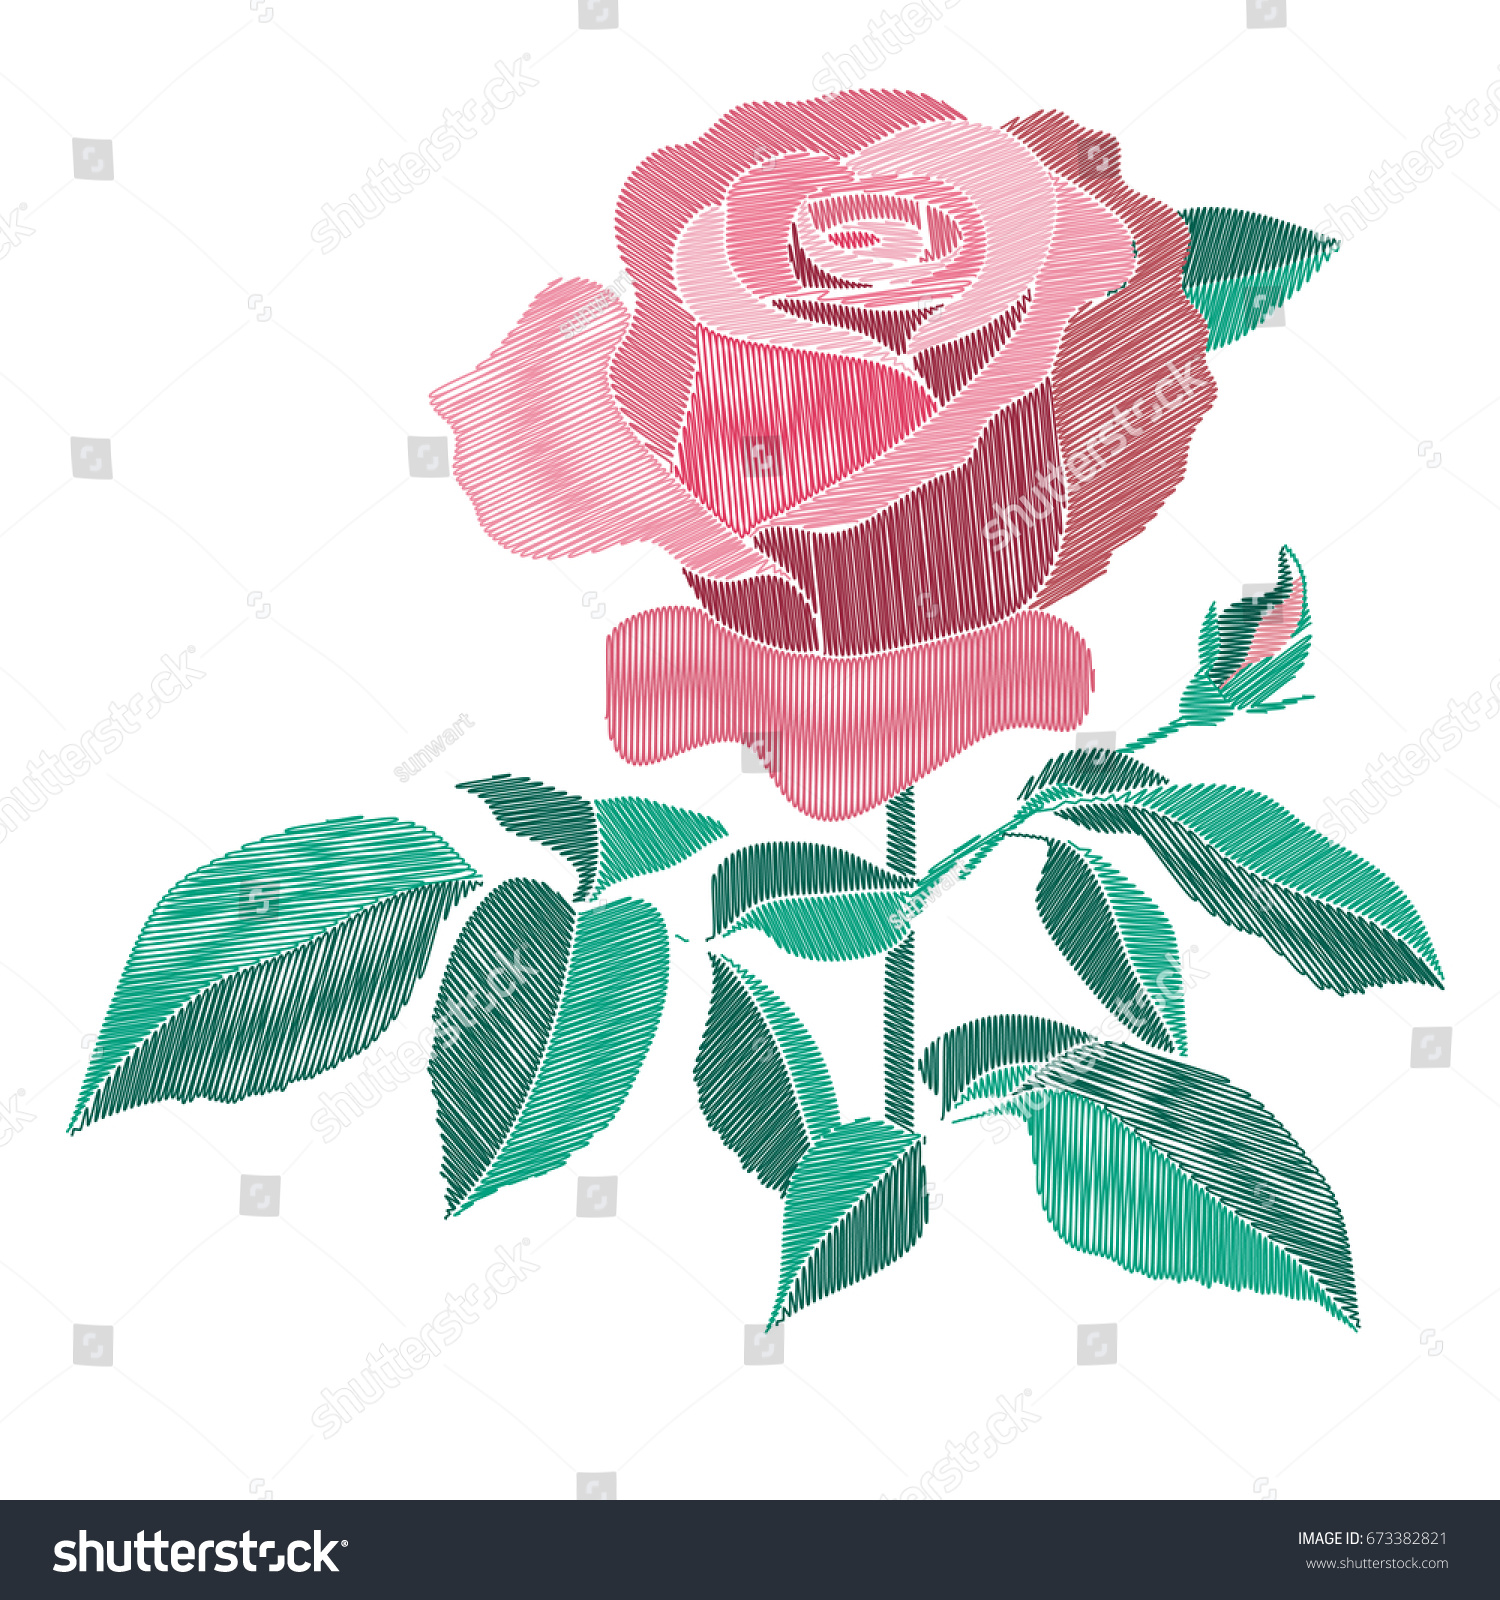 Red Pink Embroidery Roses Bush Leaves Stock Vector 673382821